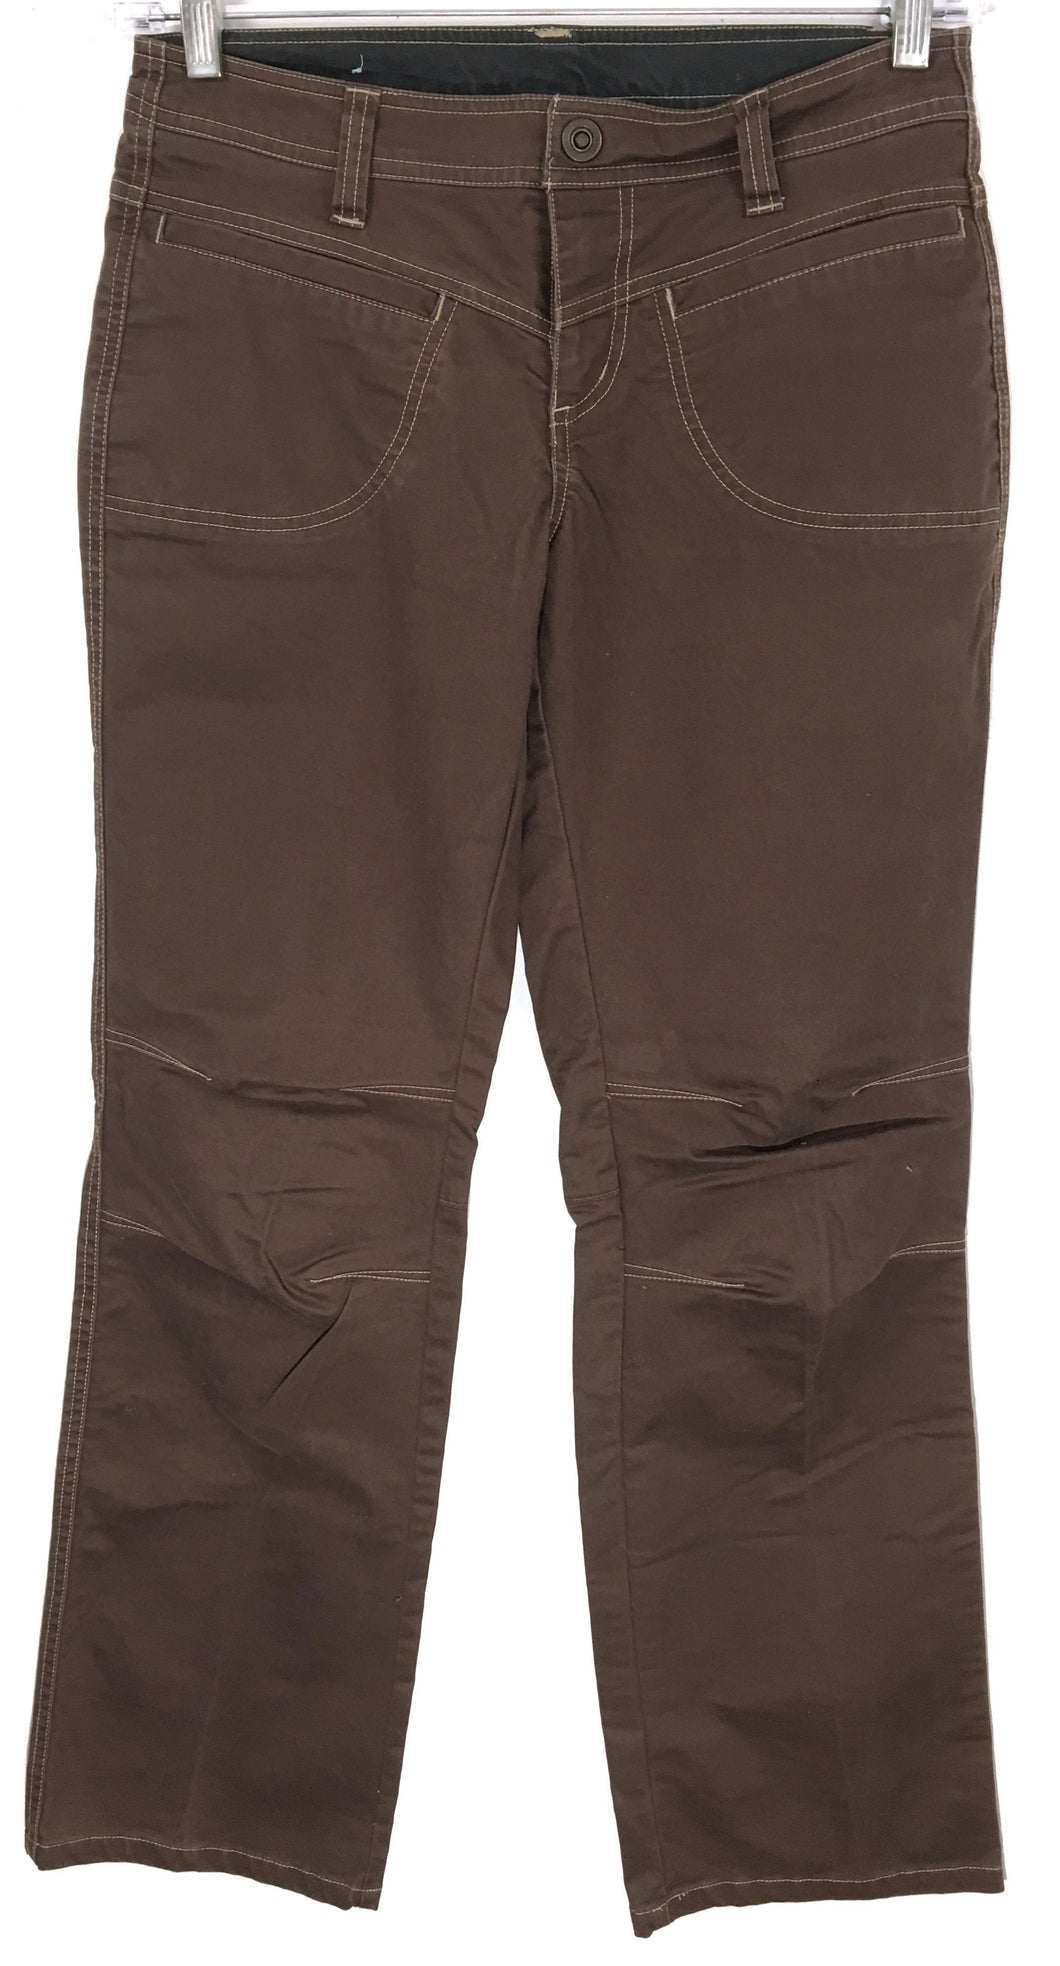 Kuhl Camping Hiking Outdoor Travel Pants Jeans Brown Womens 6 - Preowned - FunkyCrap Boutique